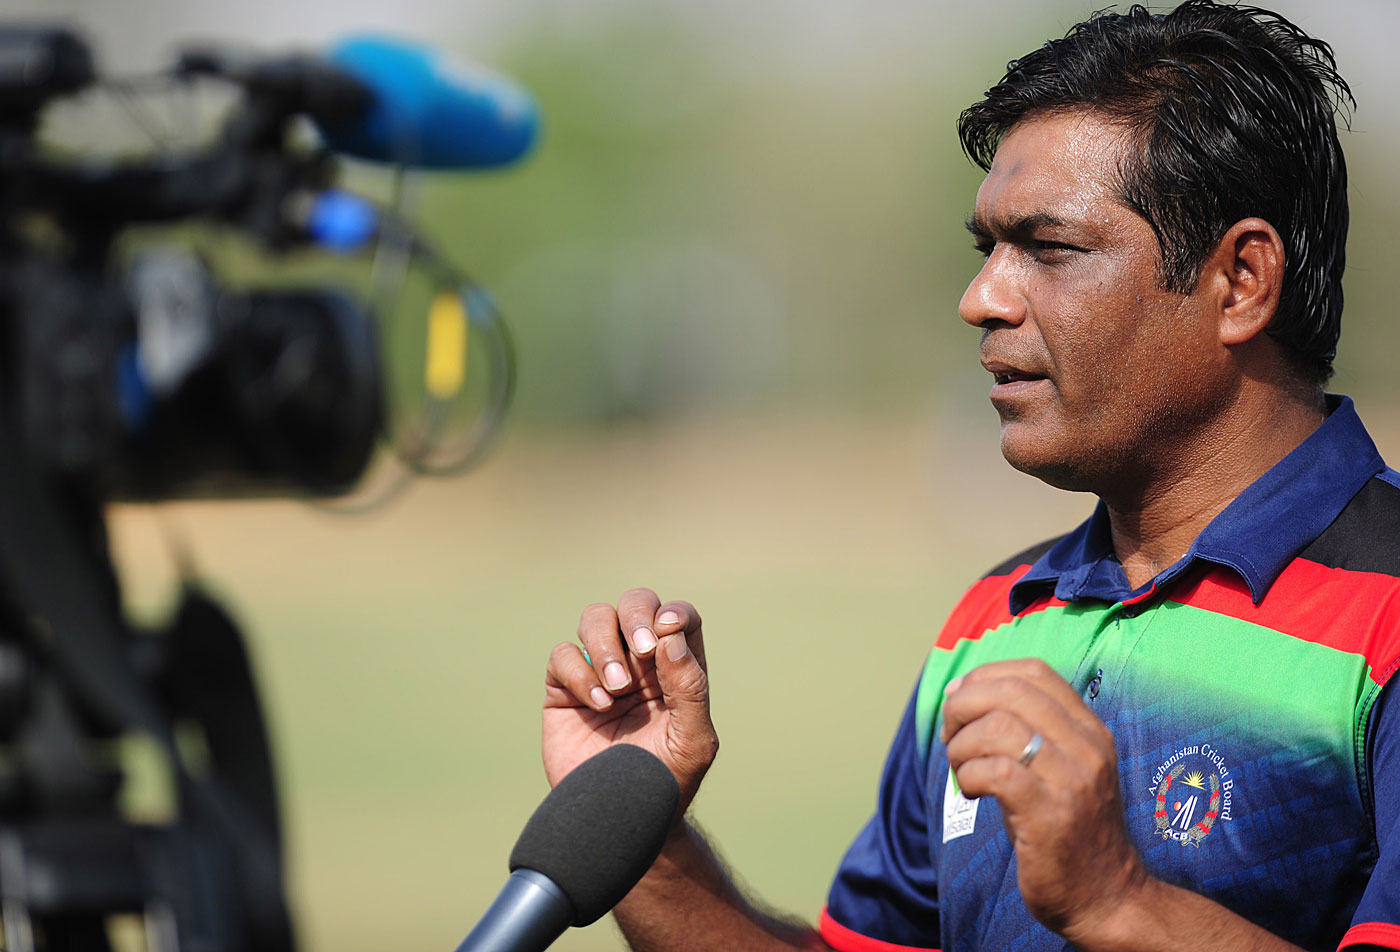 Rashid Latif's presence in Kaneria's corner is somewhat disorienting, given his record as a crusading whistleblower